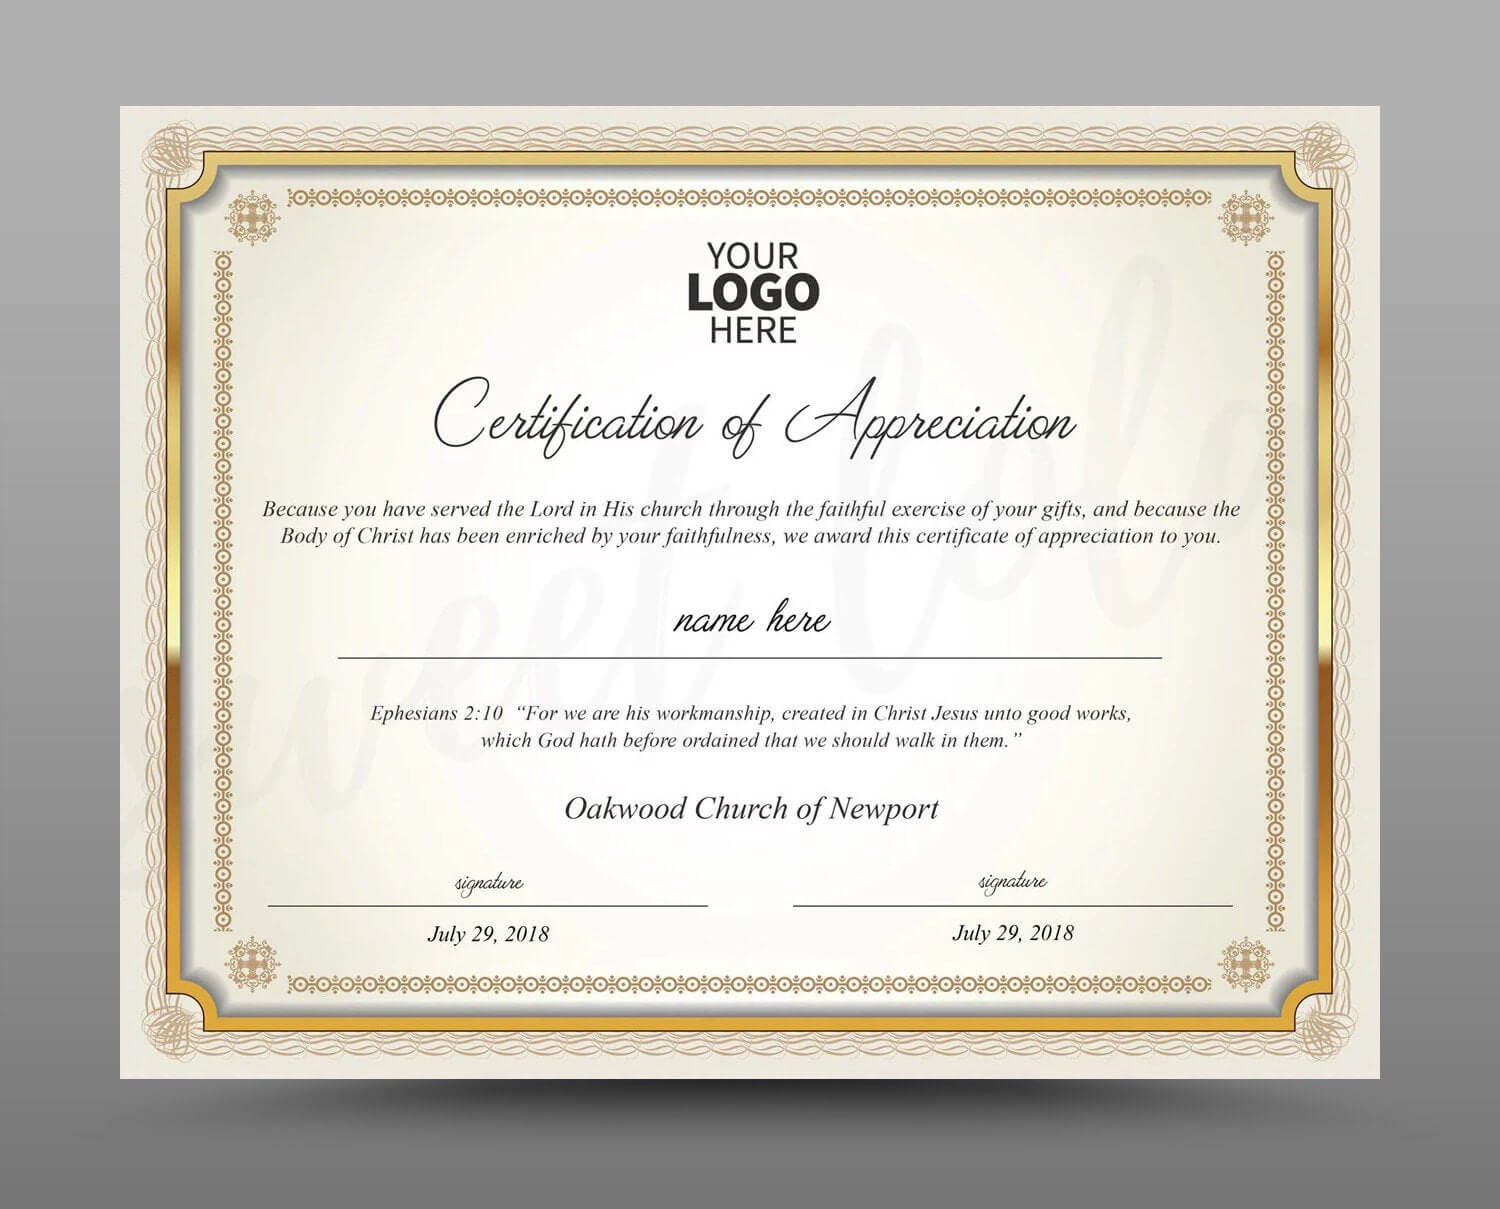 Certificate Template, Instant Download Certificate Of Appreciation -  Editable Ms Word Doc And Photoshop File Included Intended For Commemorative Certificate Template